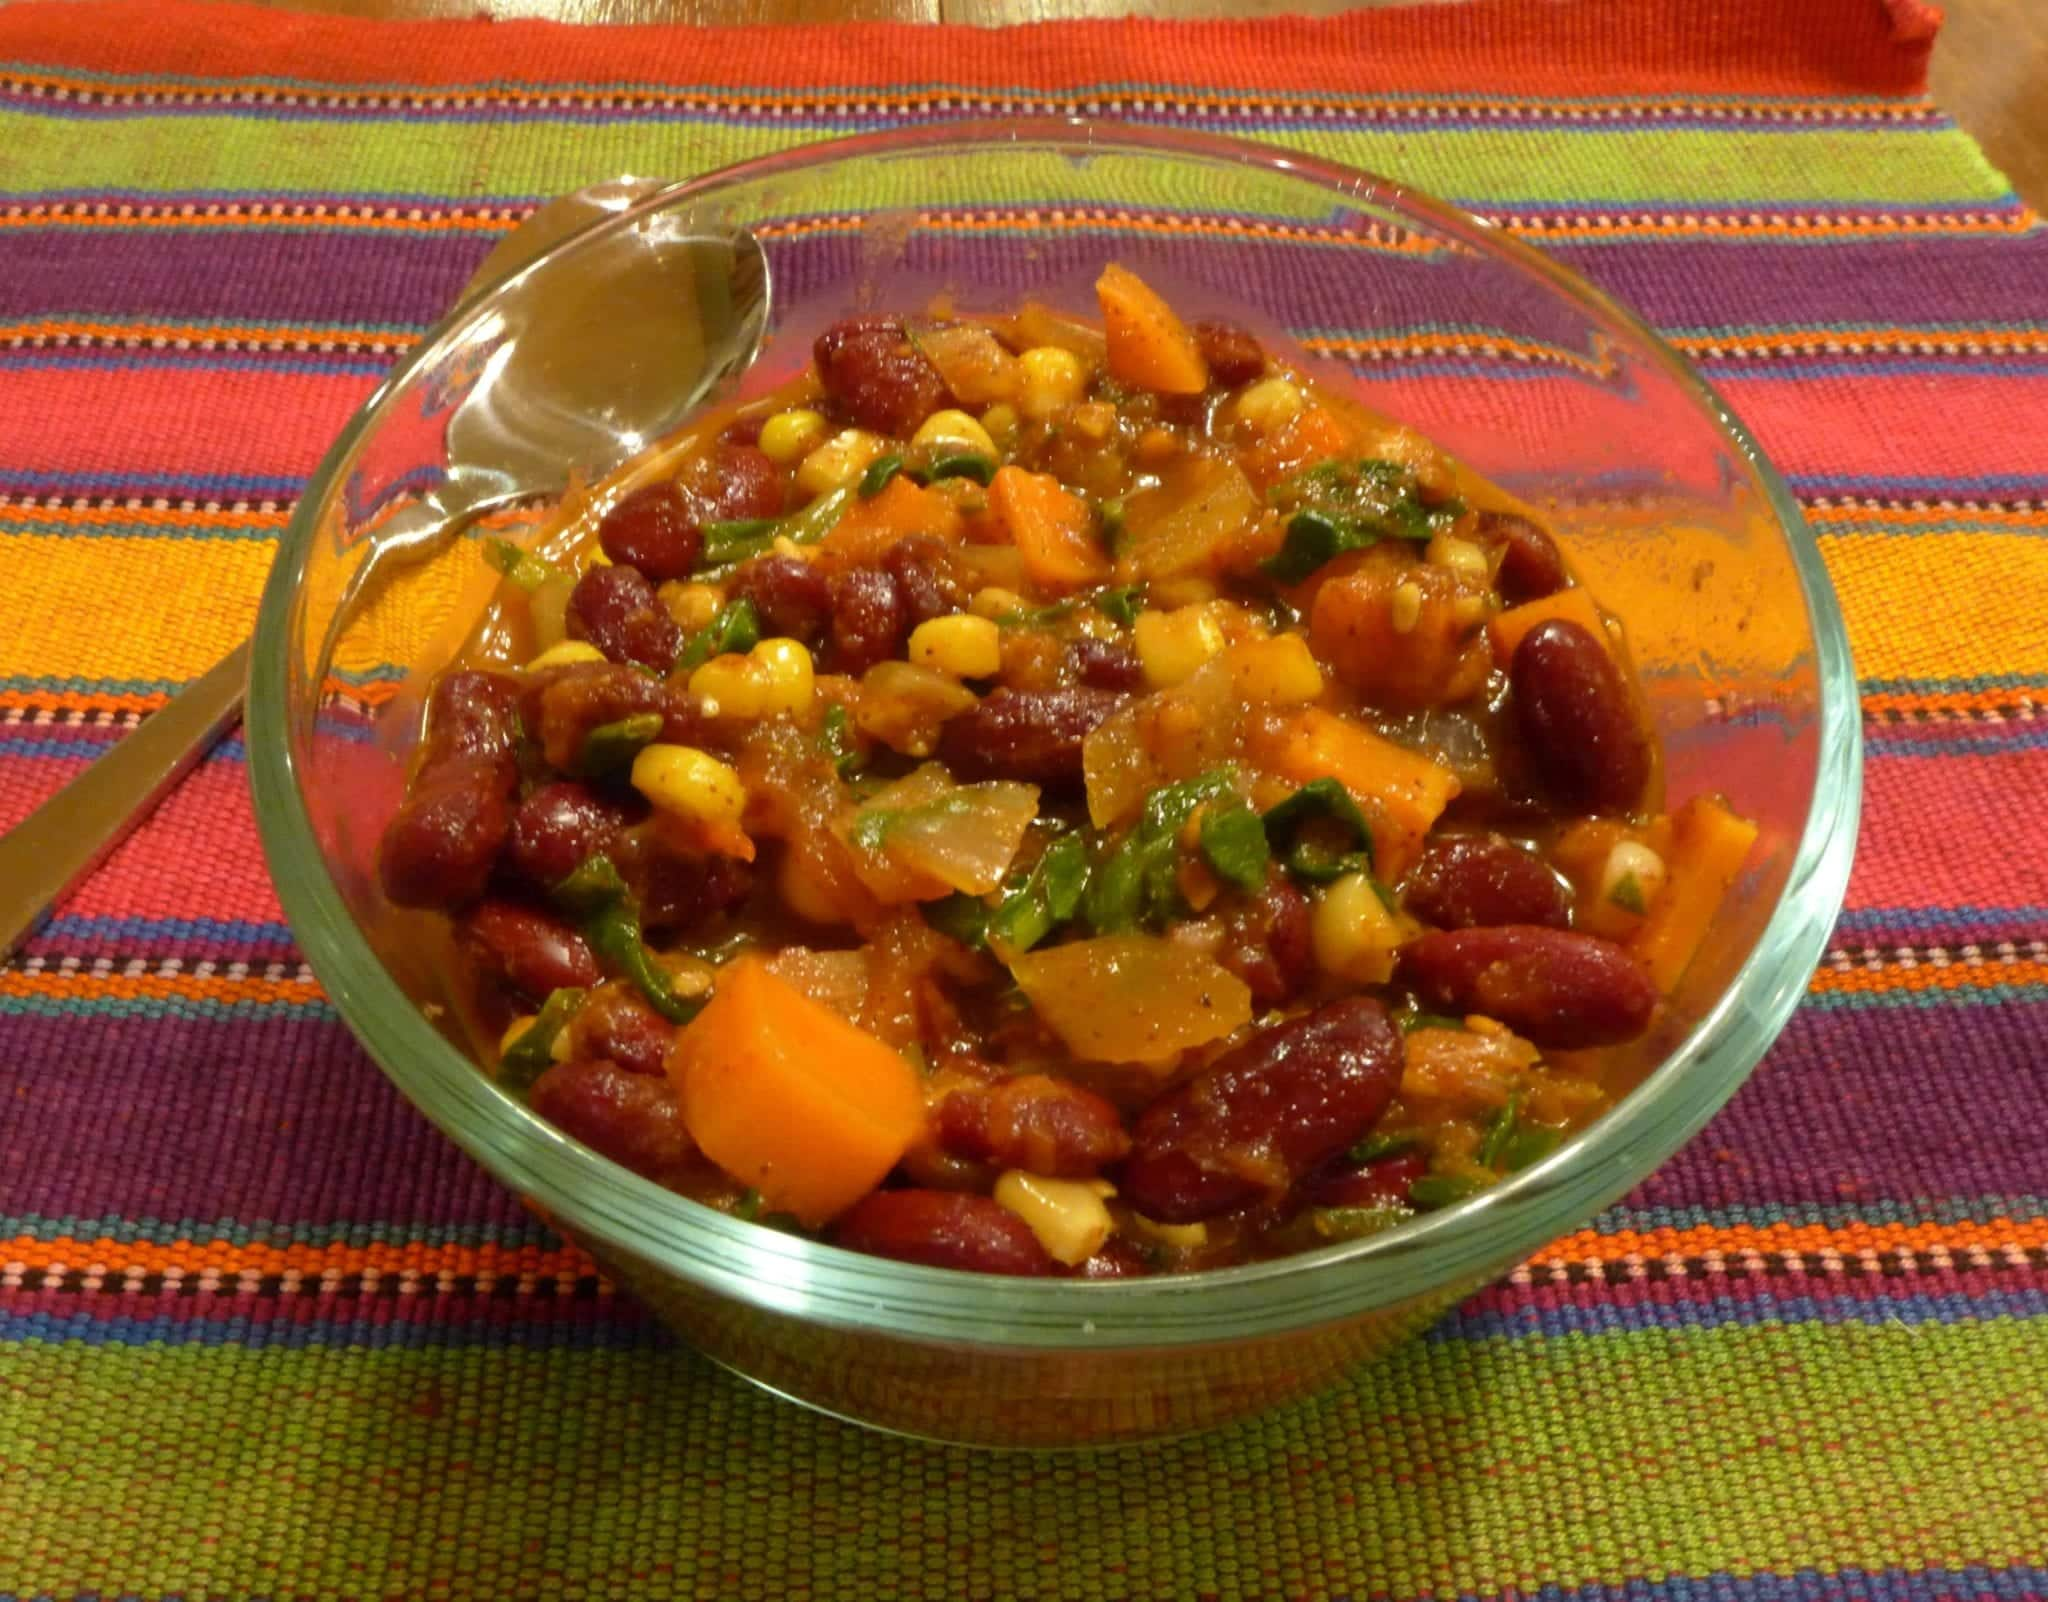 Bowl of colorful chili